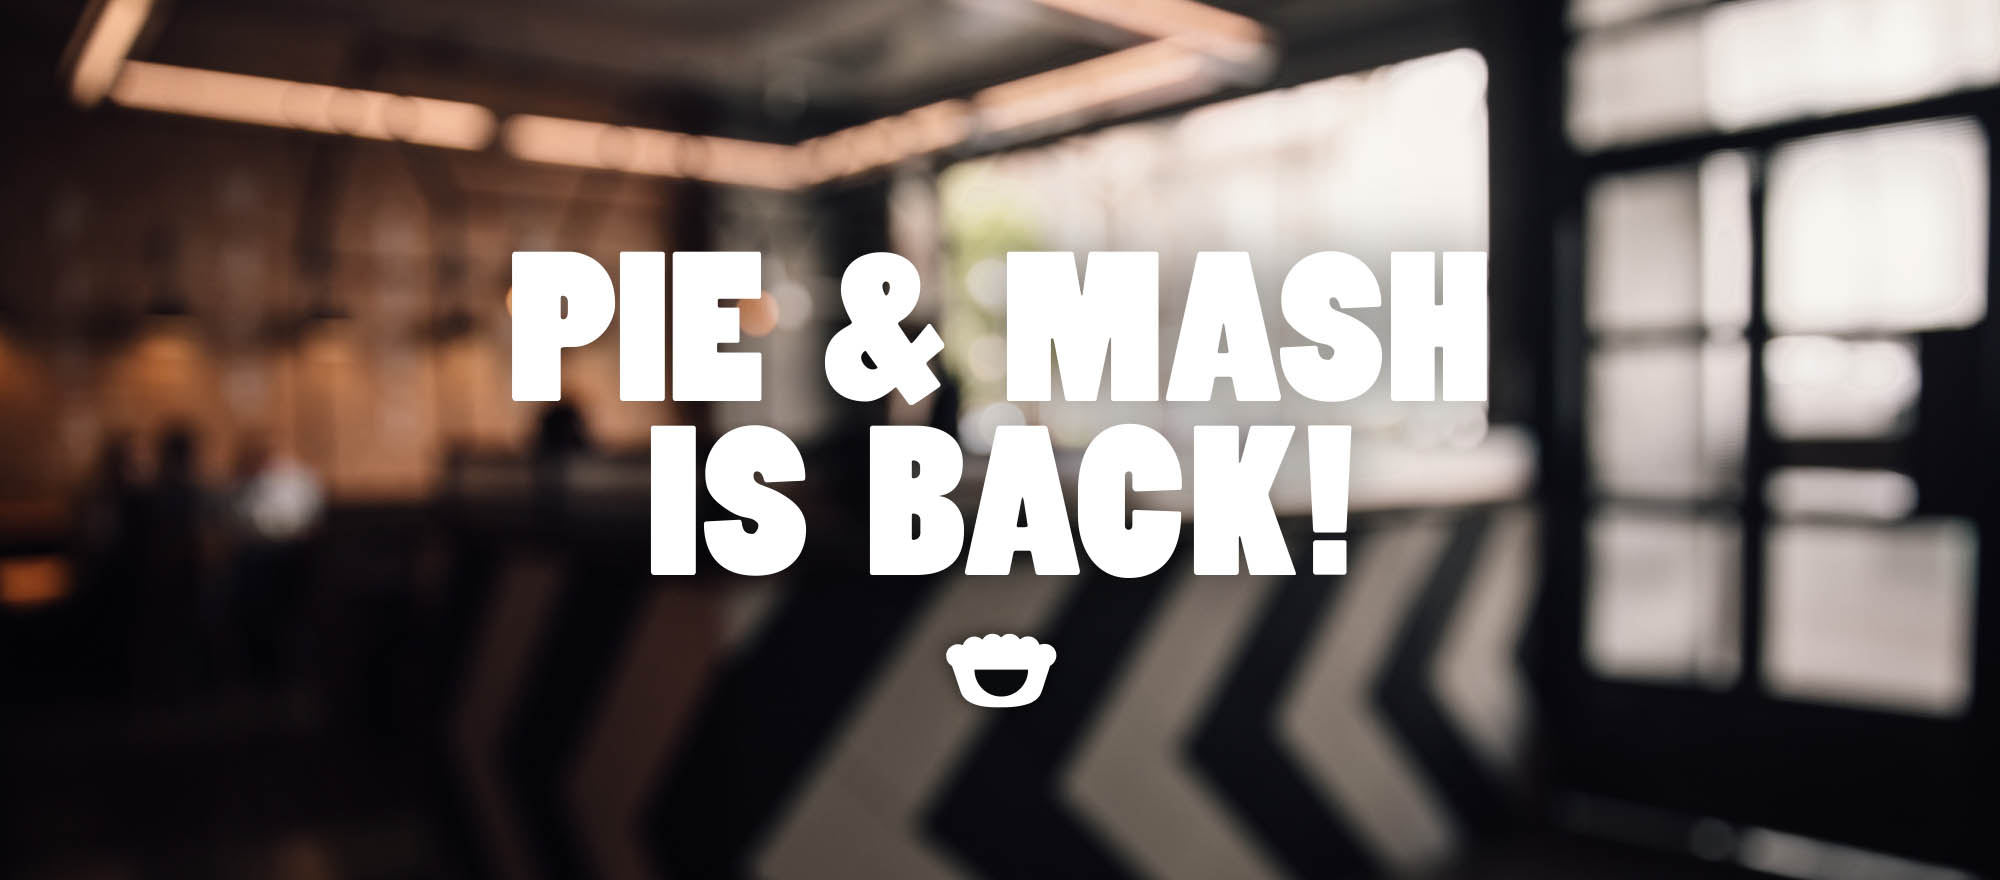 Pie & Mash is back